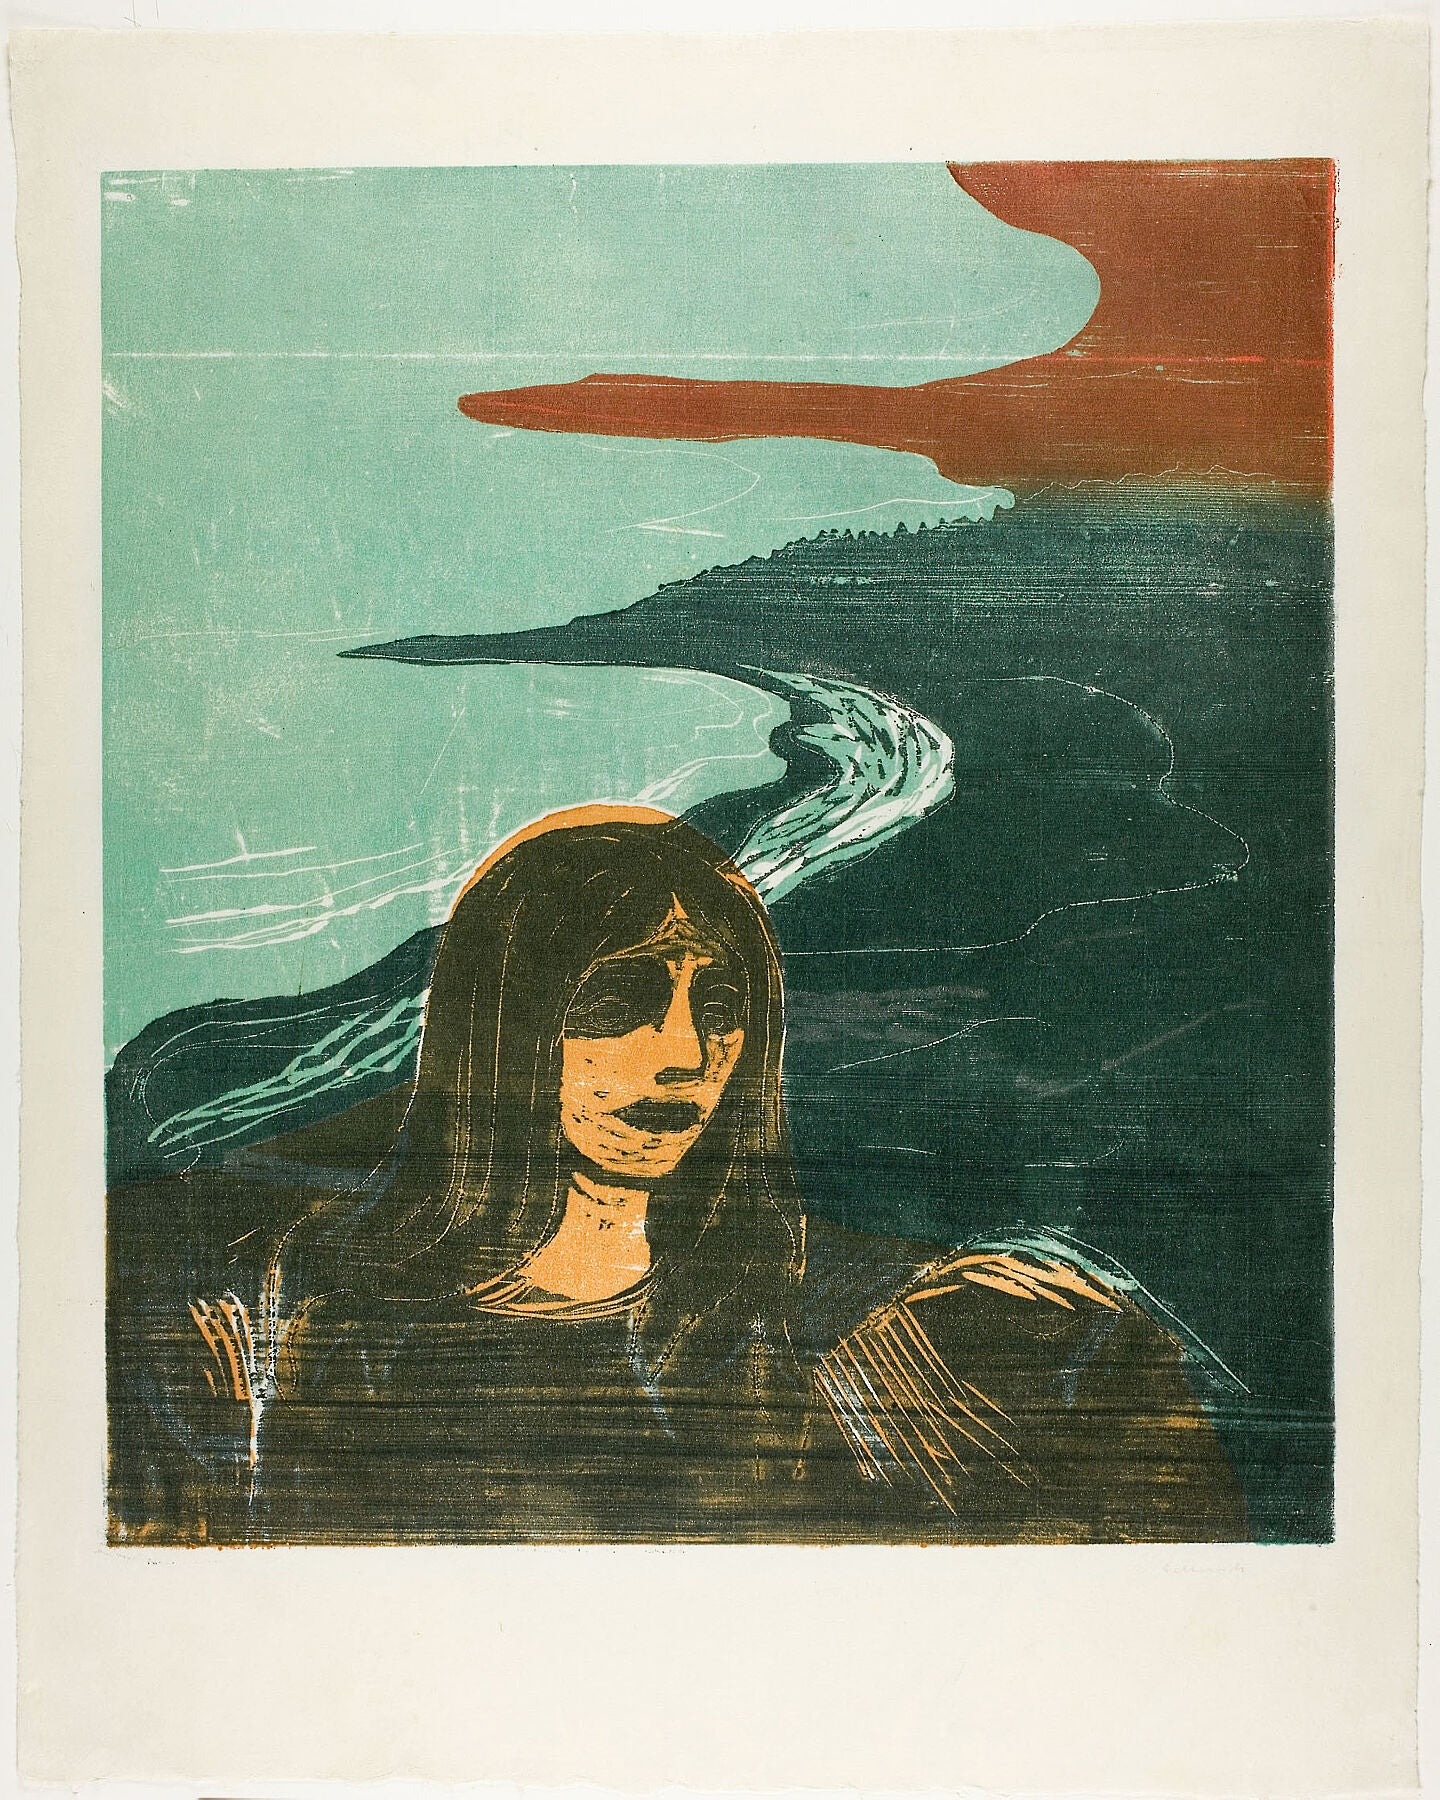 Woman's Head against the Shore by Edvard Munch - 1899